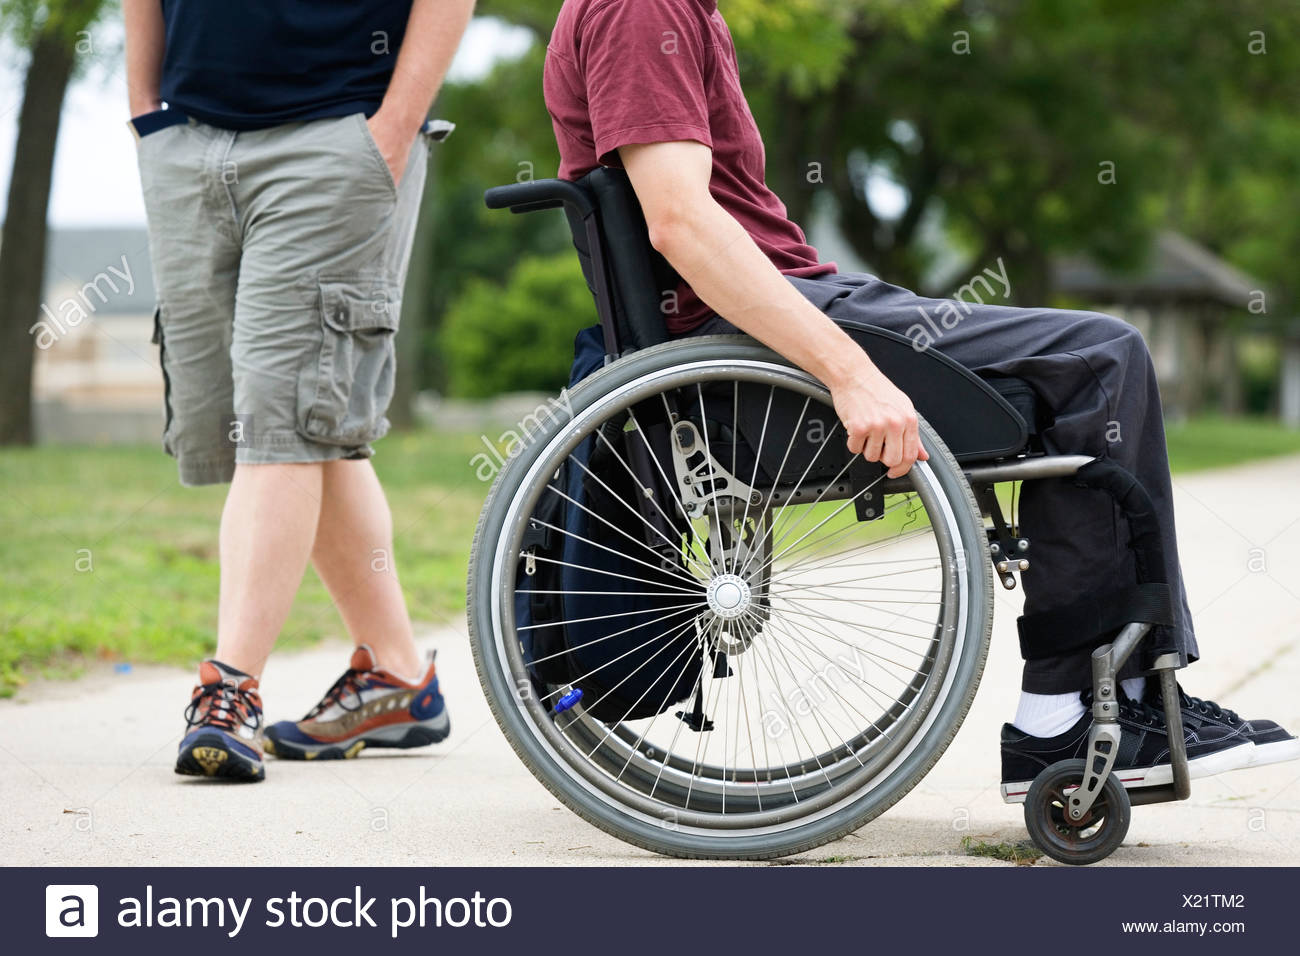 Handicapped man on a wheel chair Stock Photo: 276636530 - Alamy